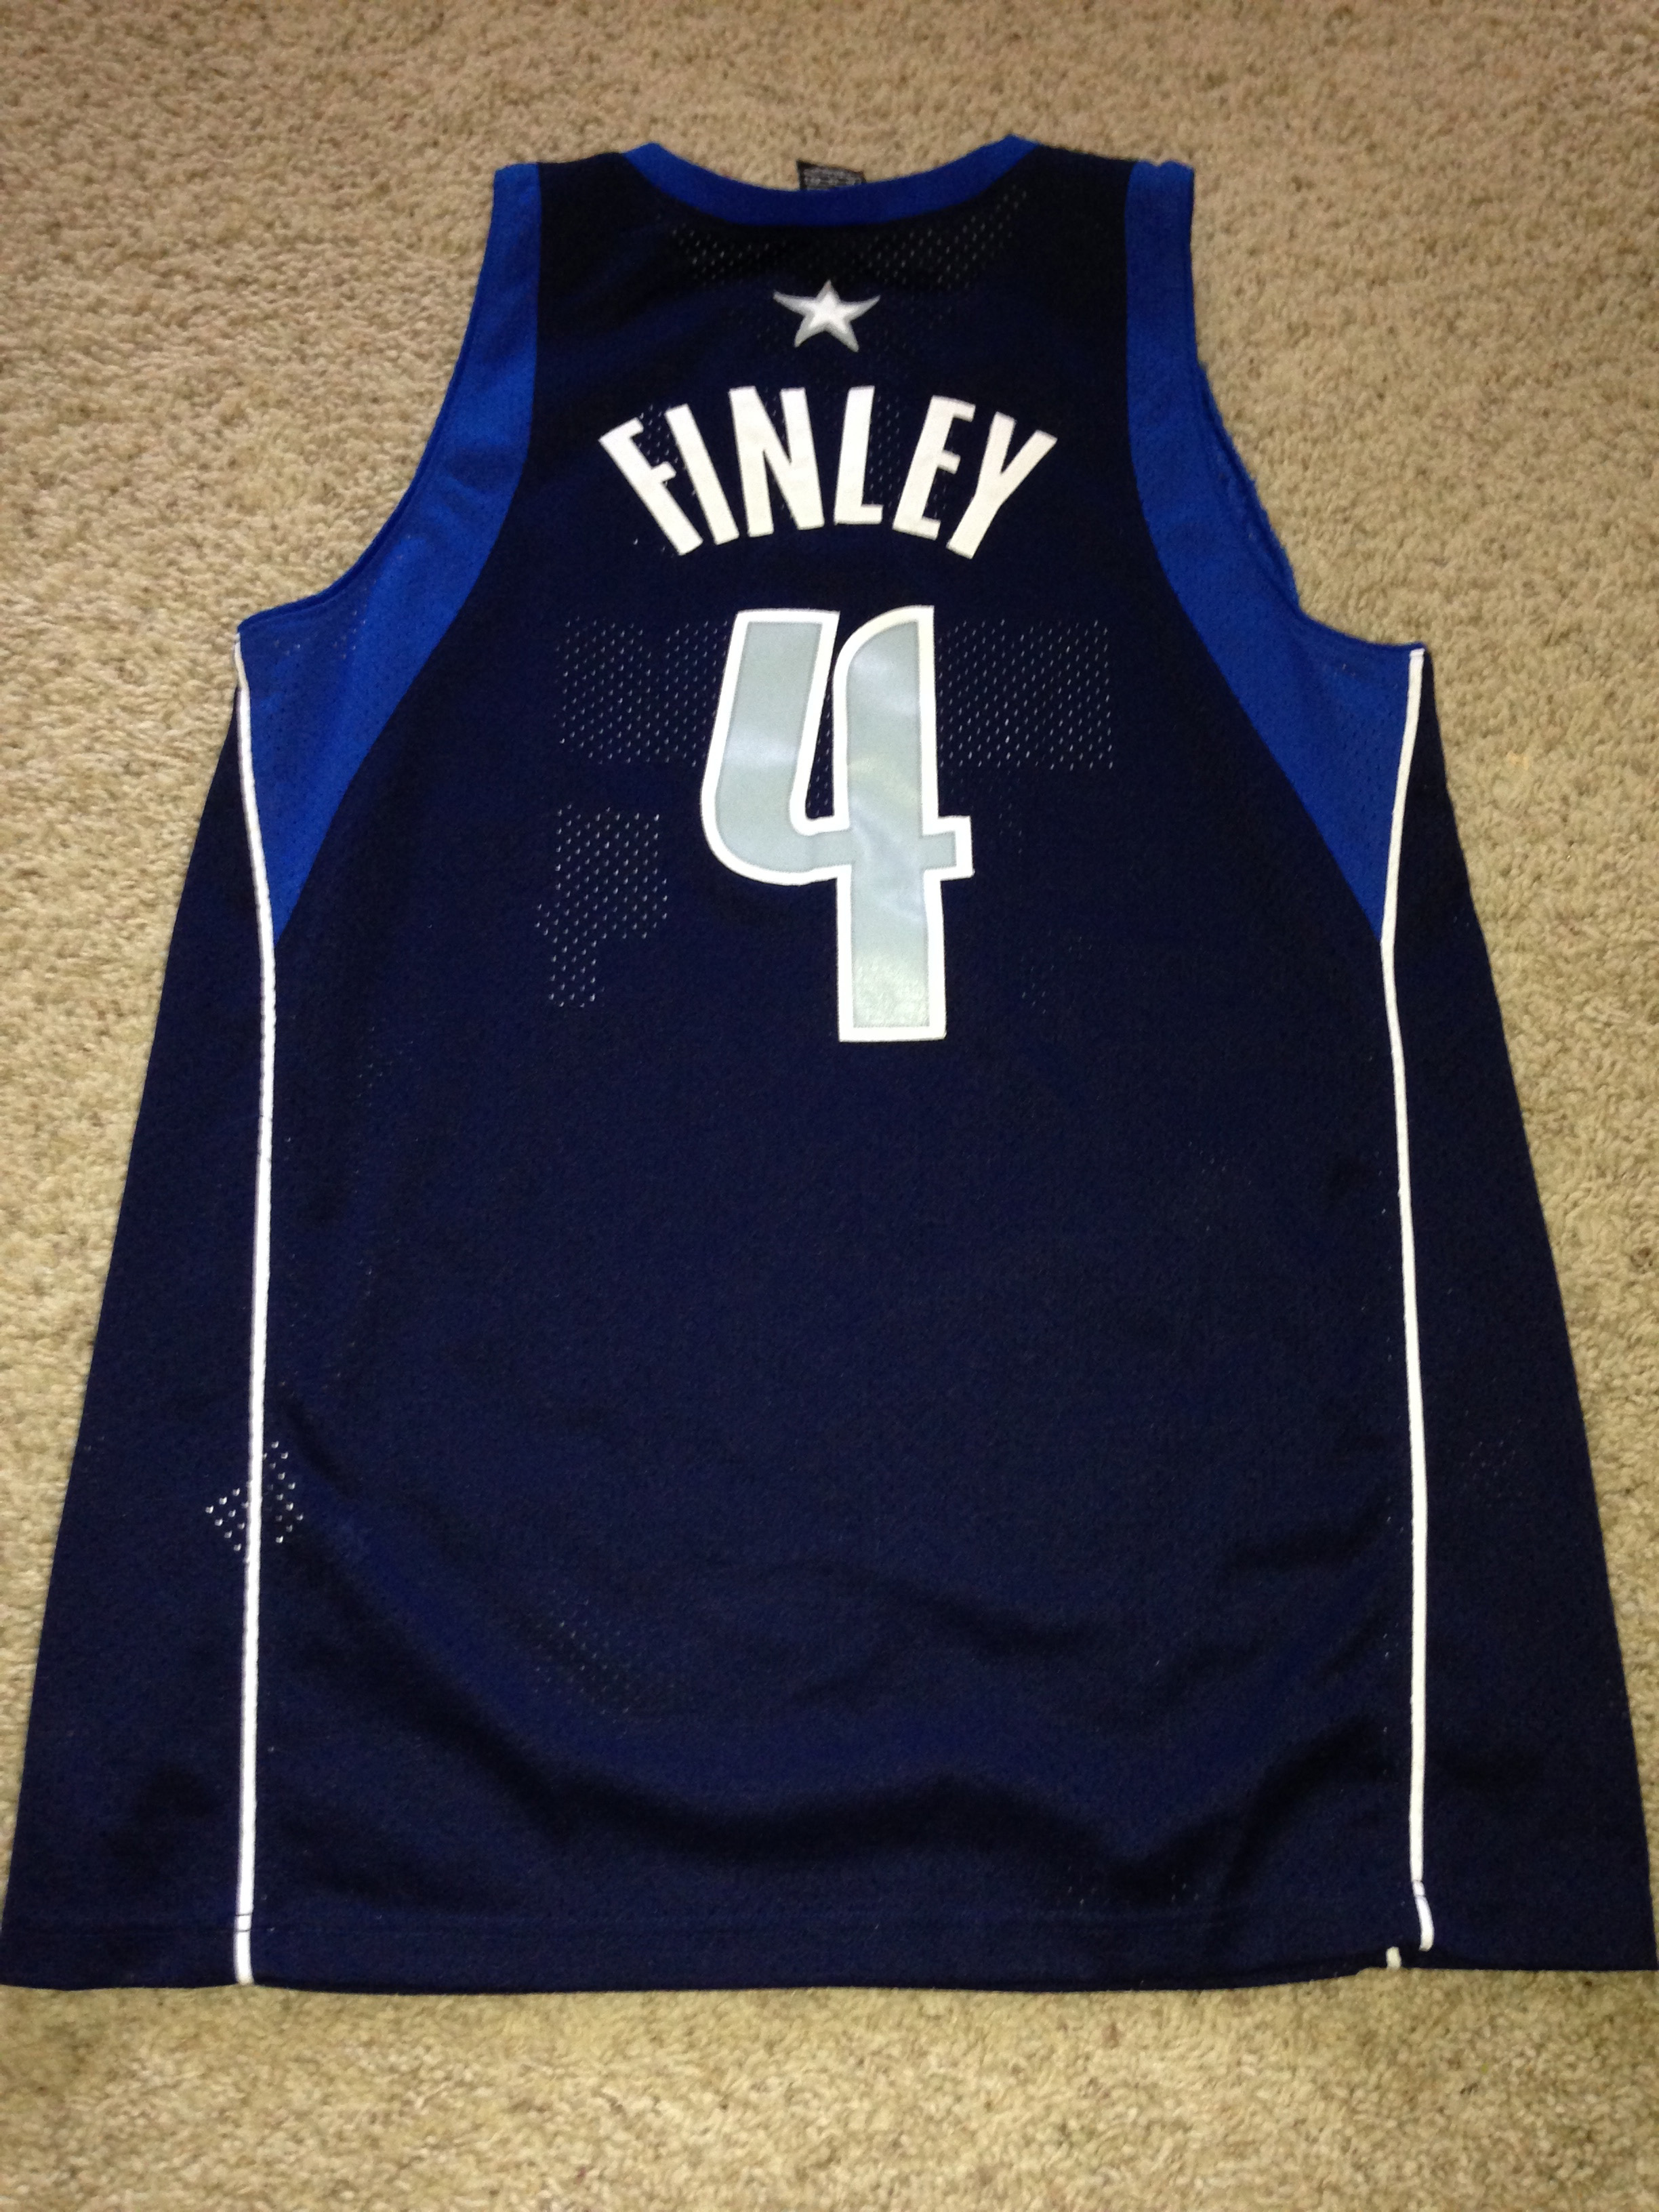 "Wolves Mavs Preview The ""I found my old Michael Finley jersey"